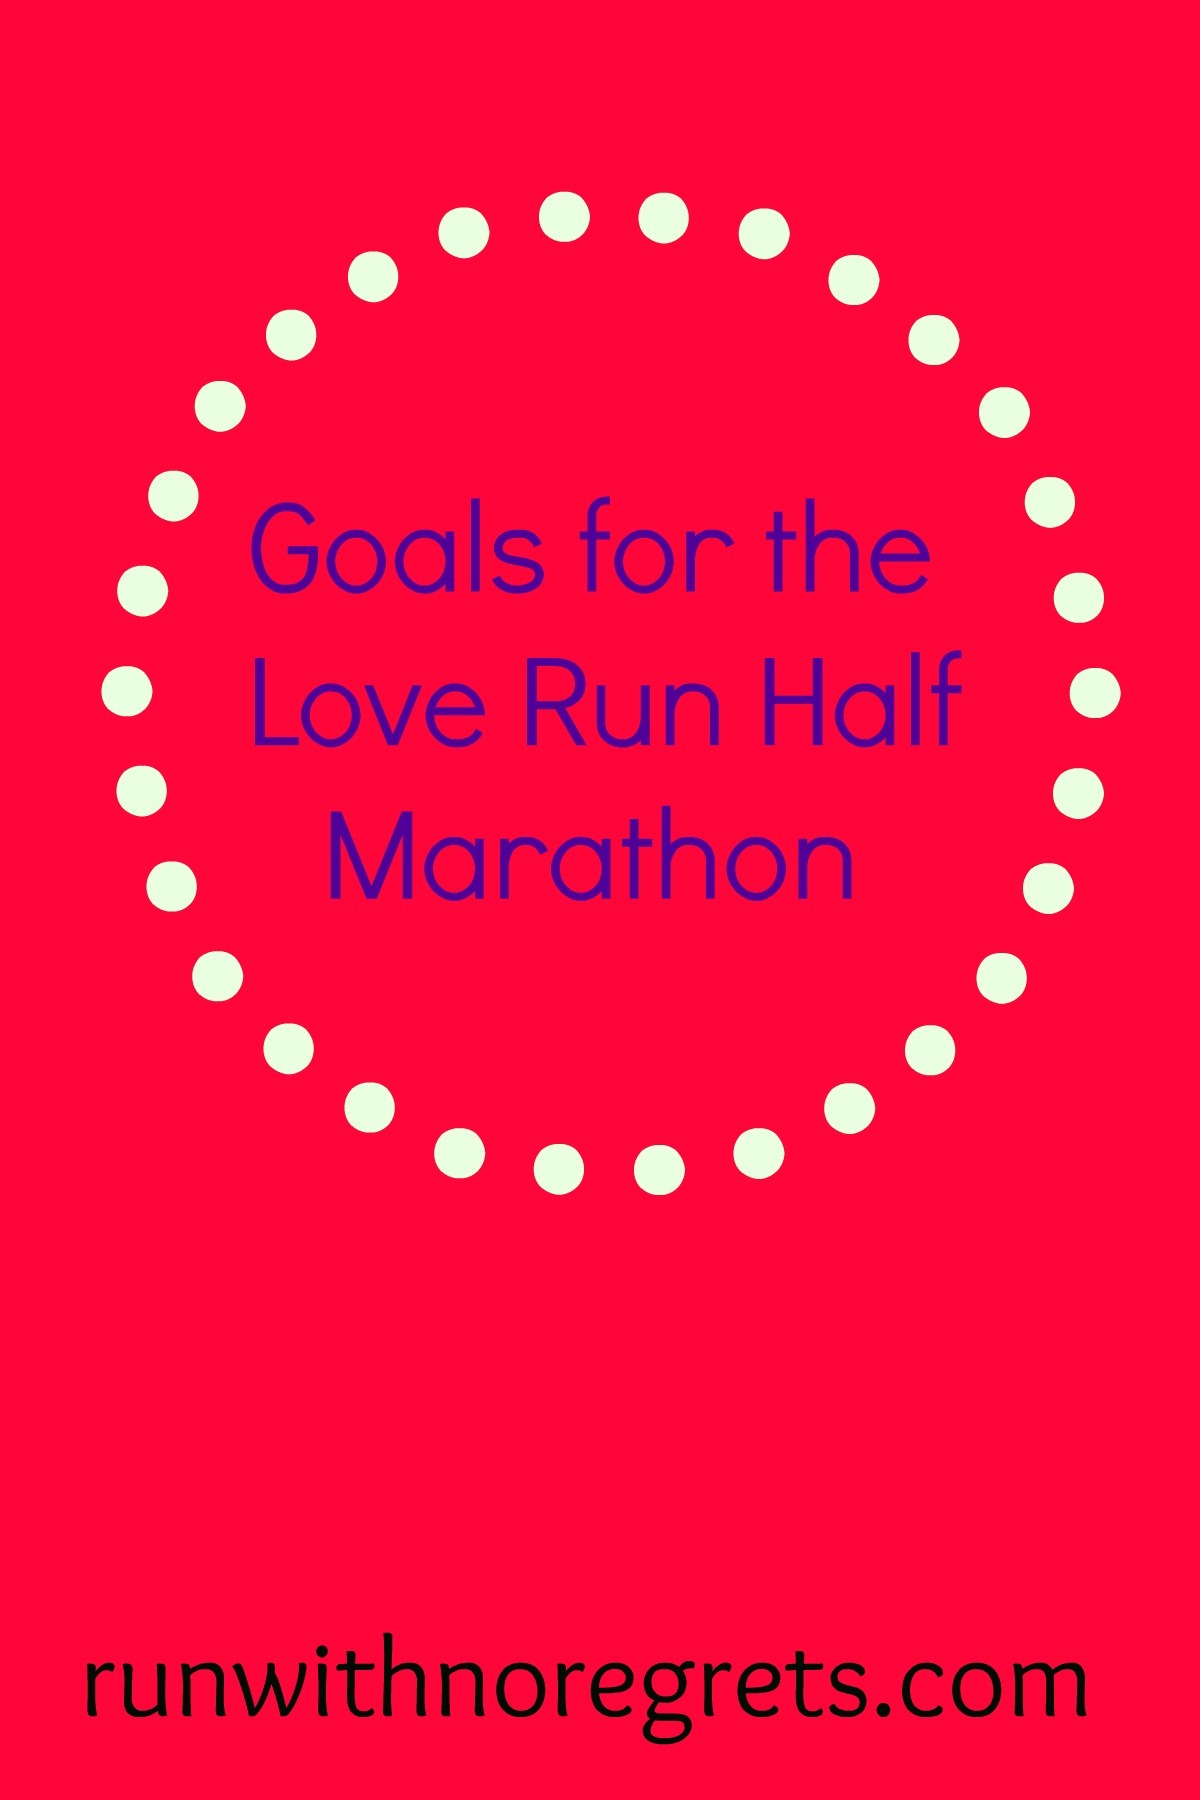 I'm sharing my goals for the Love Run Half Marathon in Philadelphia, my first goal race of the year! Find more about race training at runwithnoregrets.com!